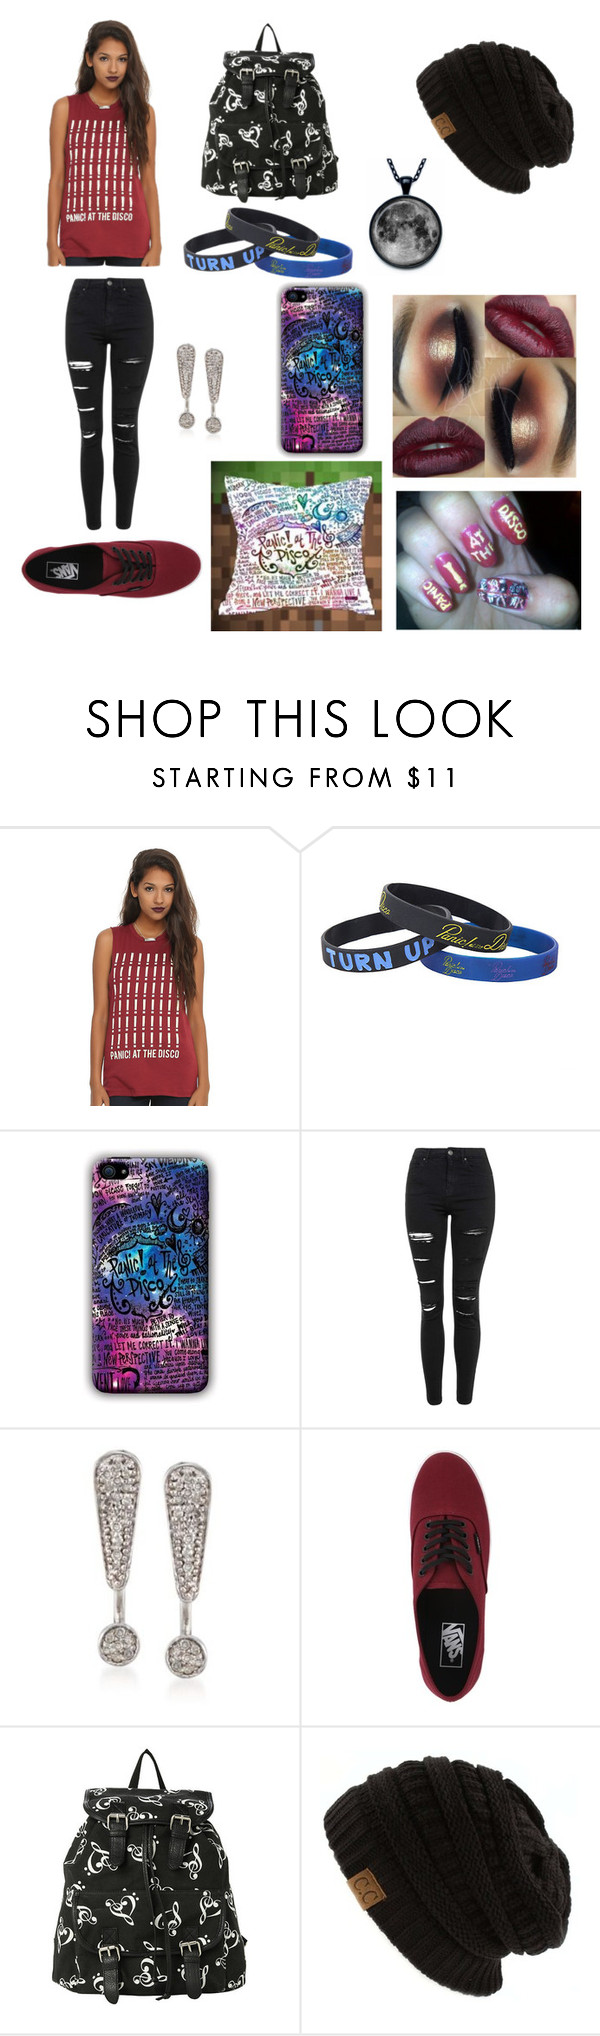 """Panic! At the disco"" by kat235 ❤ liked on Polyvore featuring Topshop, Ross-Simons and Vans"